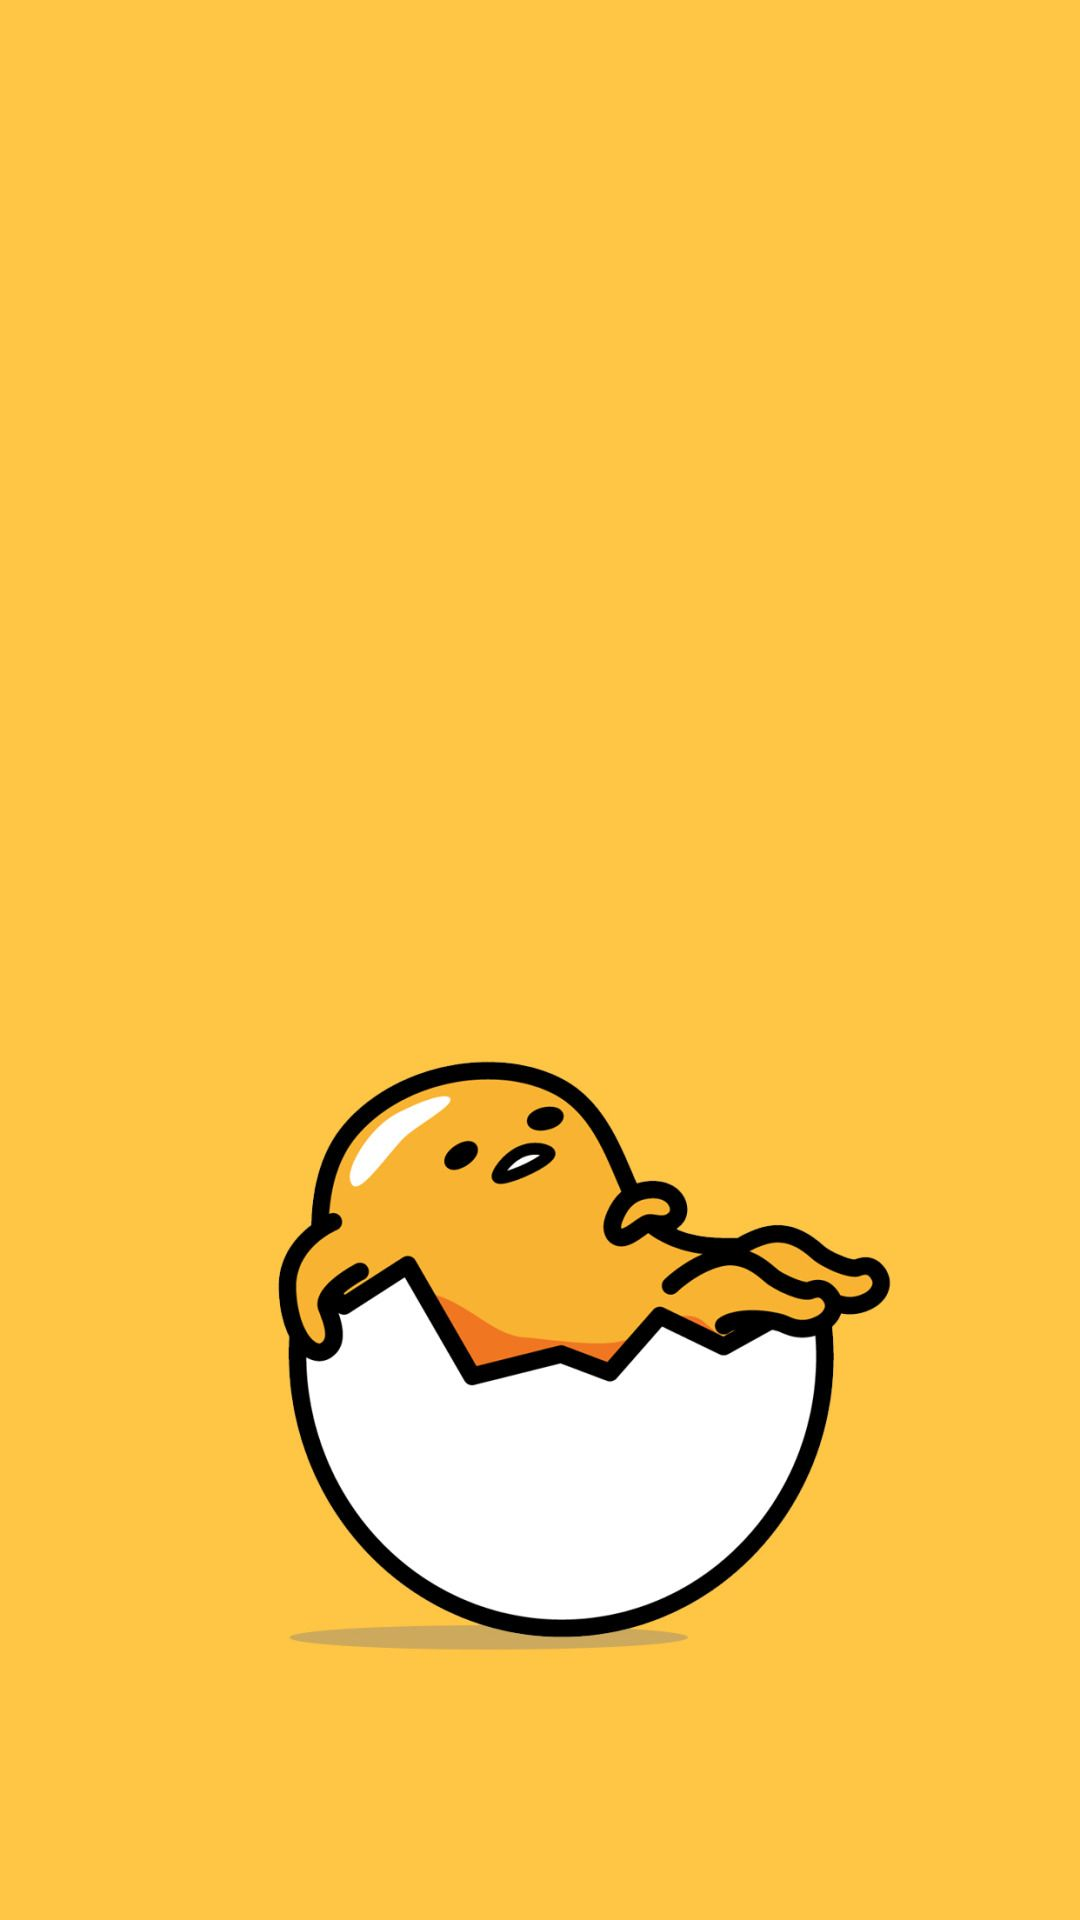 gudetama wallpaper Tumblr Wallpaper iphone cute